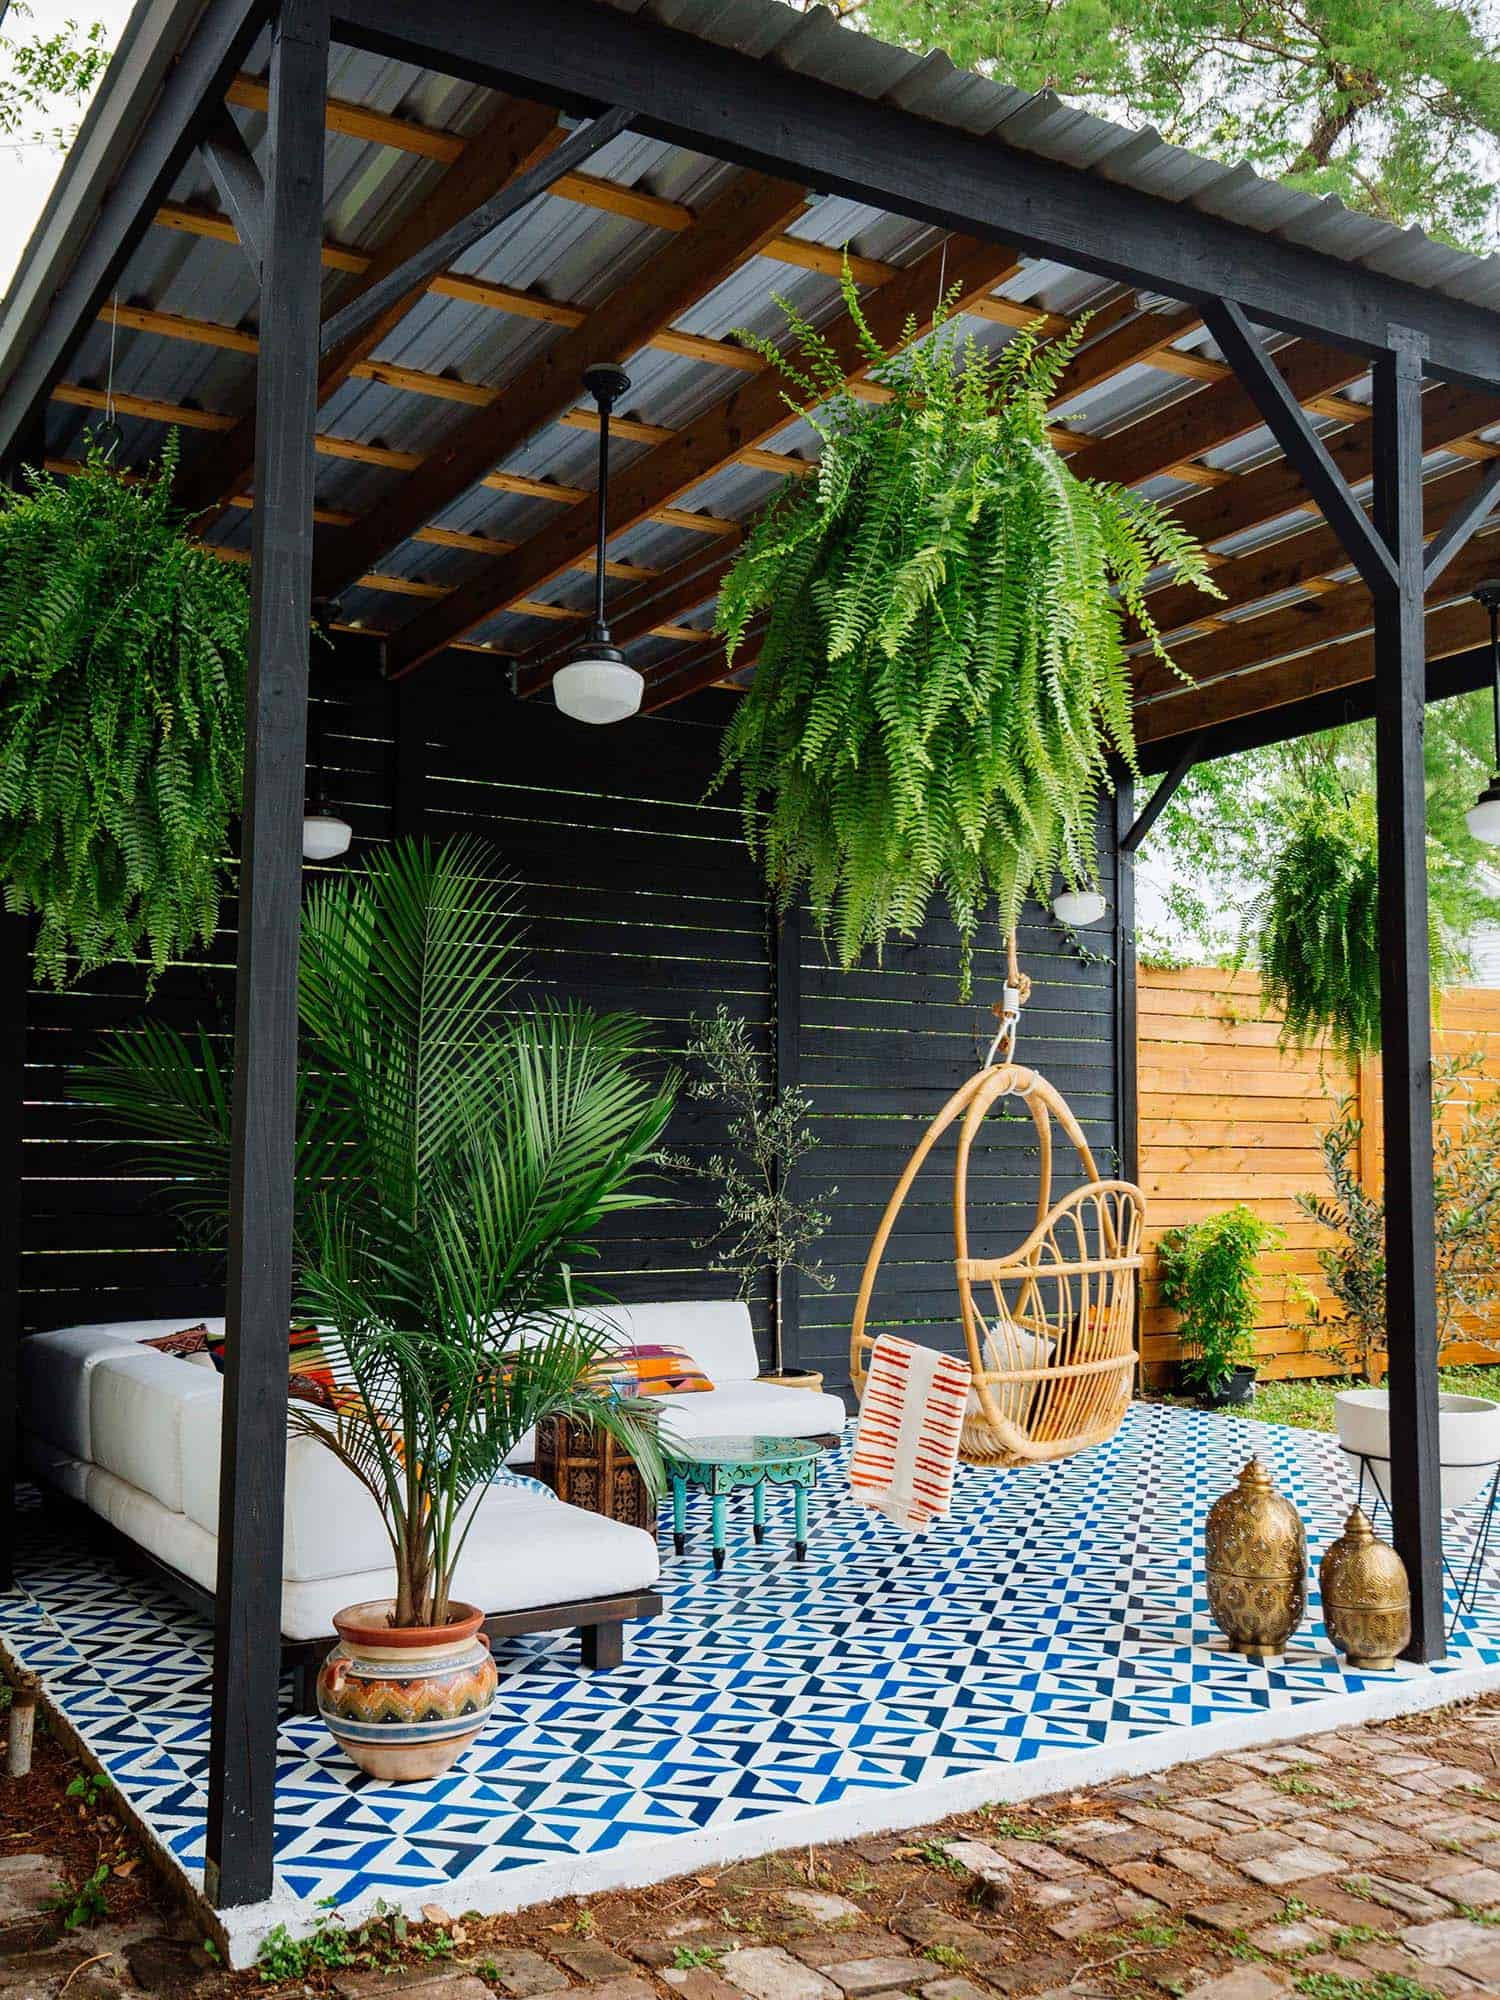 Outdoor Shower Tumblr 35 Brilliant And Inspiring Patio Ideas For Outdoor Living And